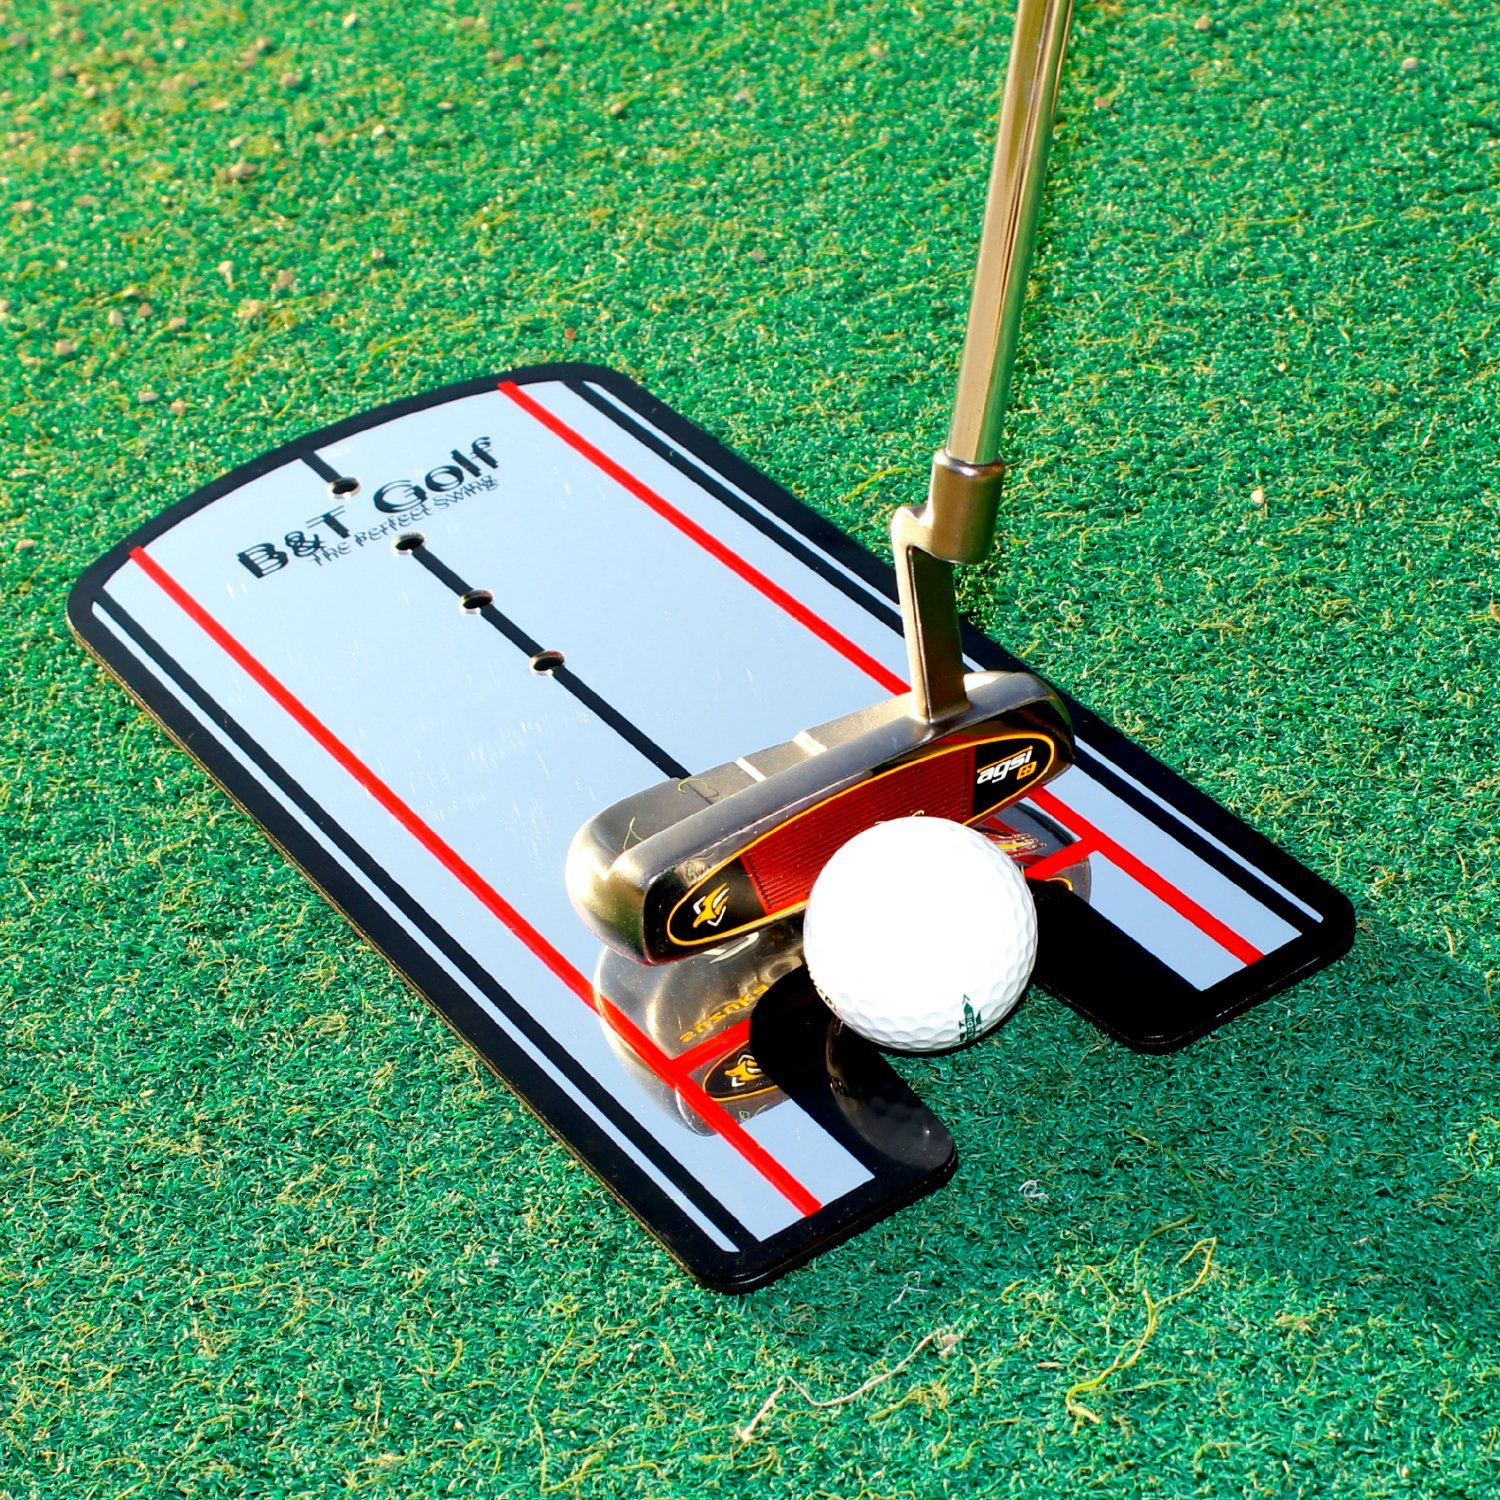 a align towel setup brown grant with aids aid swing your check alignment golf